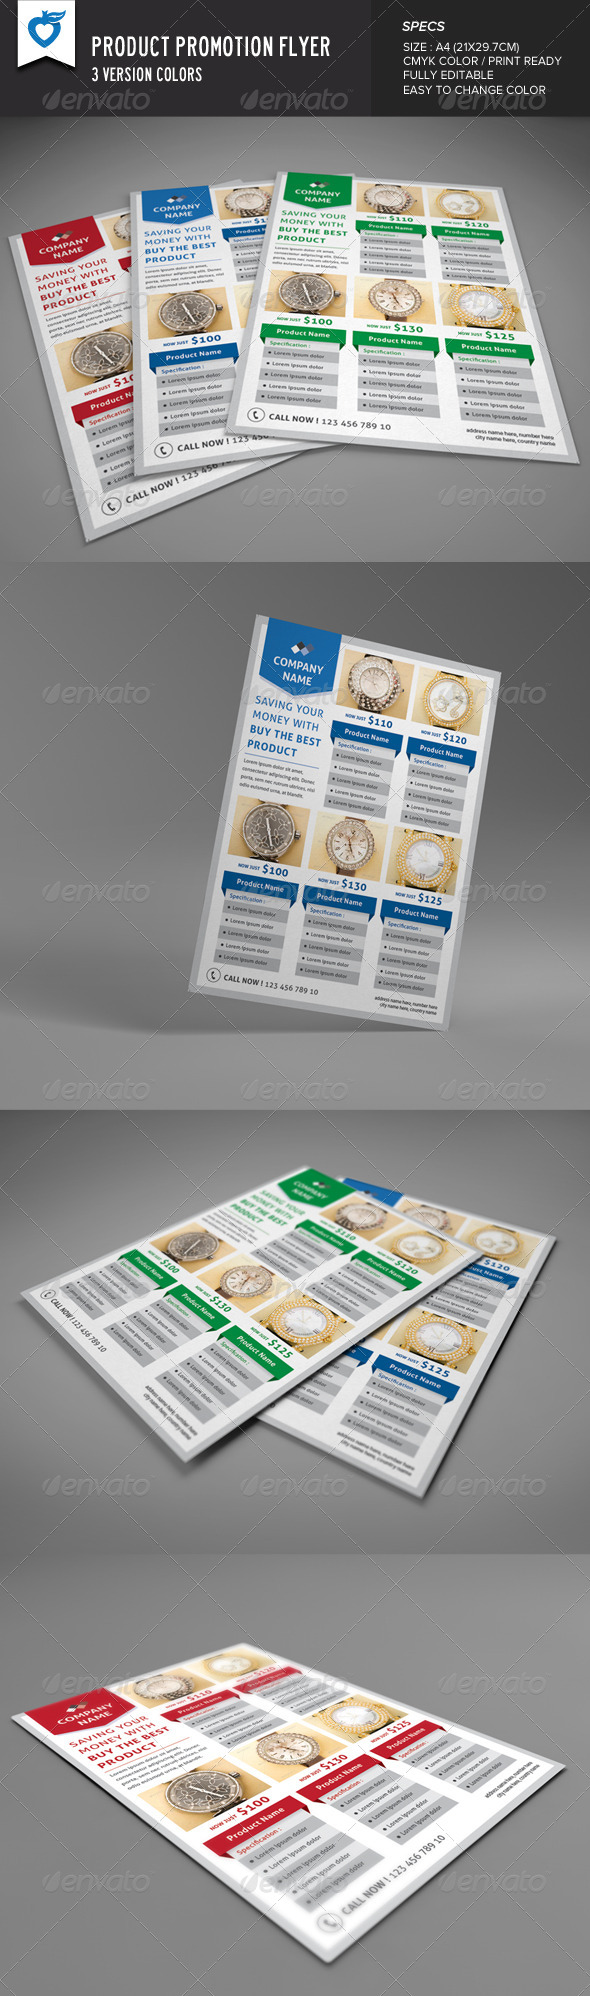 GraphicRiver Product Promotion Flyer 8303378